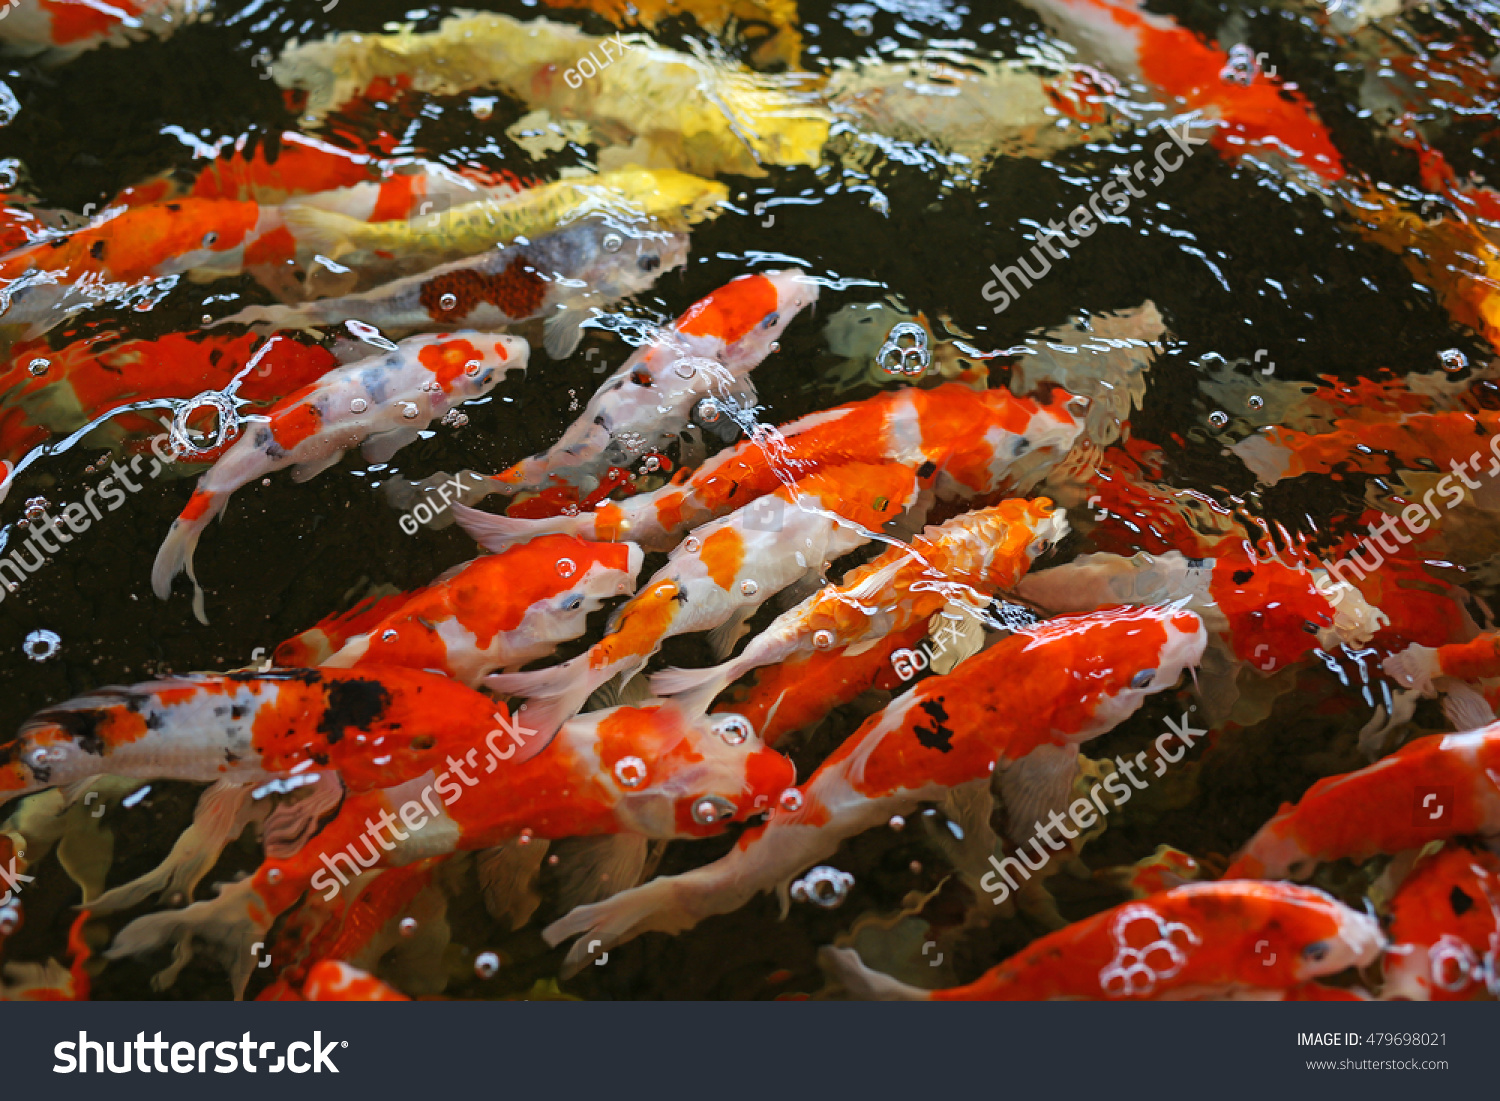 Colorful Fancy Carp Fish Koi Fish Stock Photo 479698021 - Shutterstock